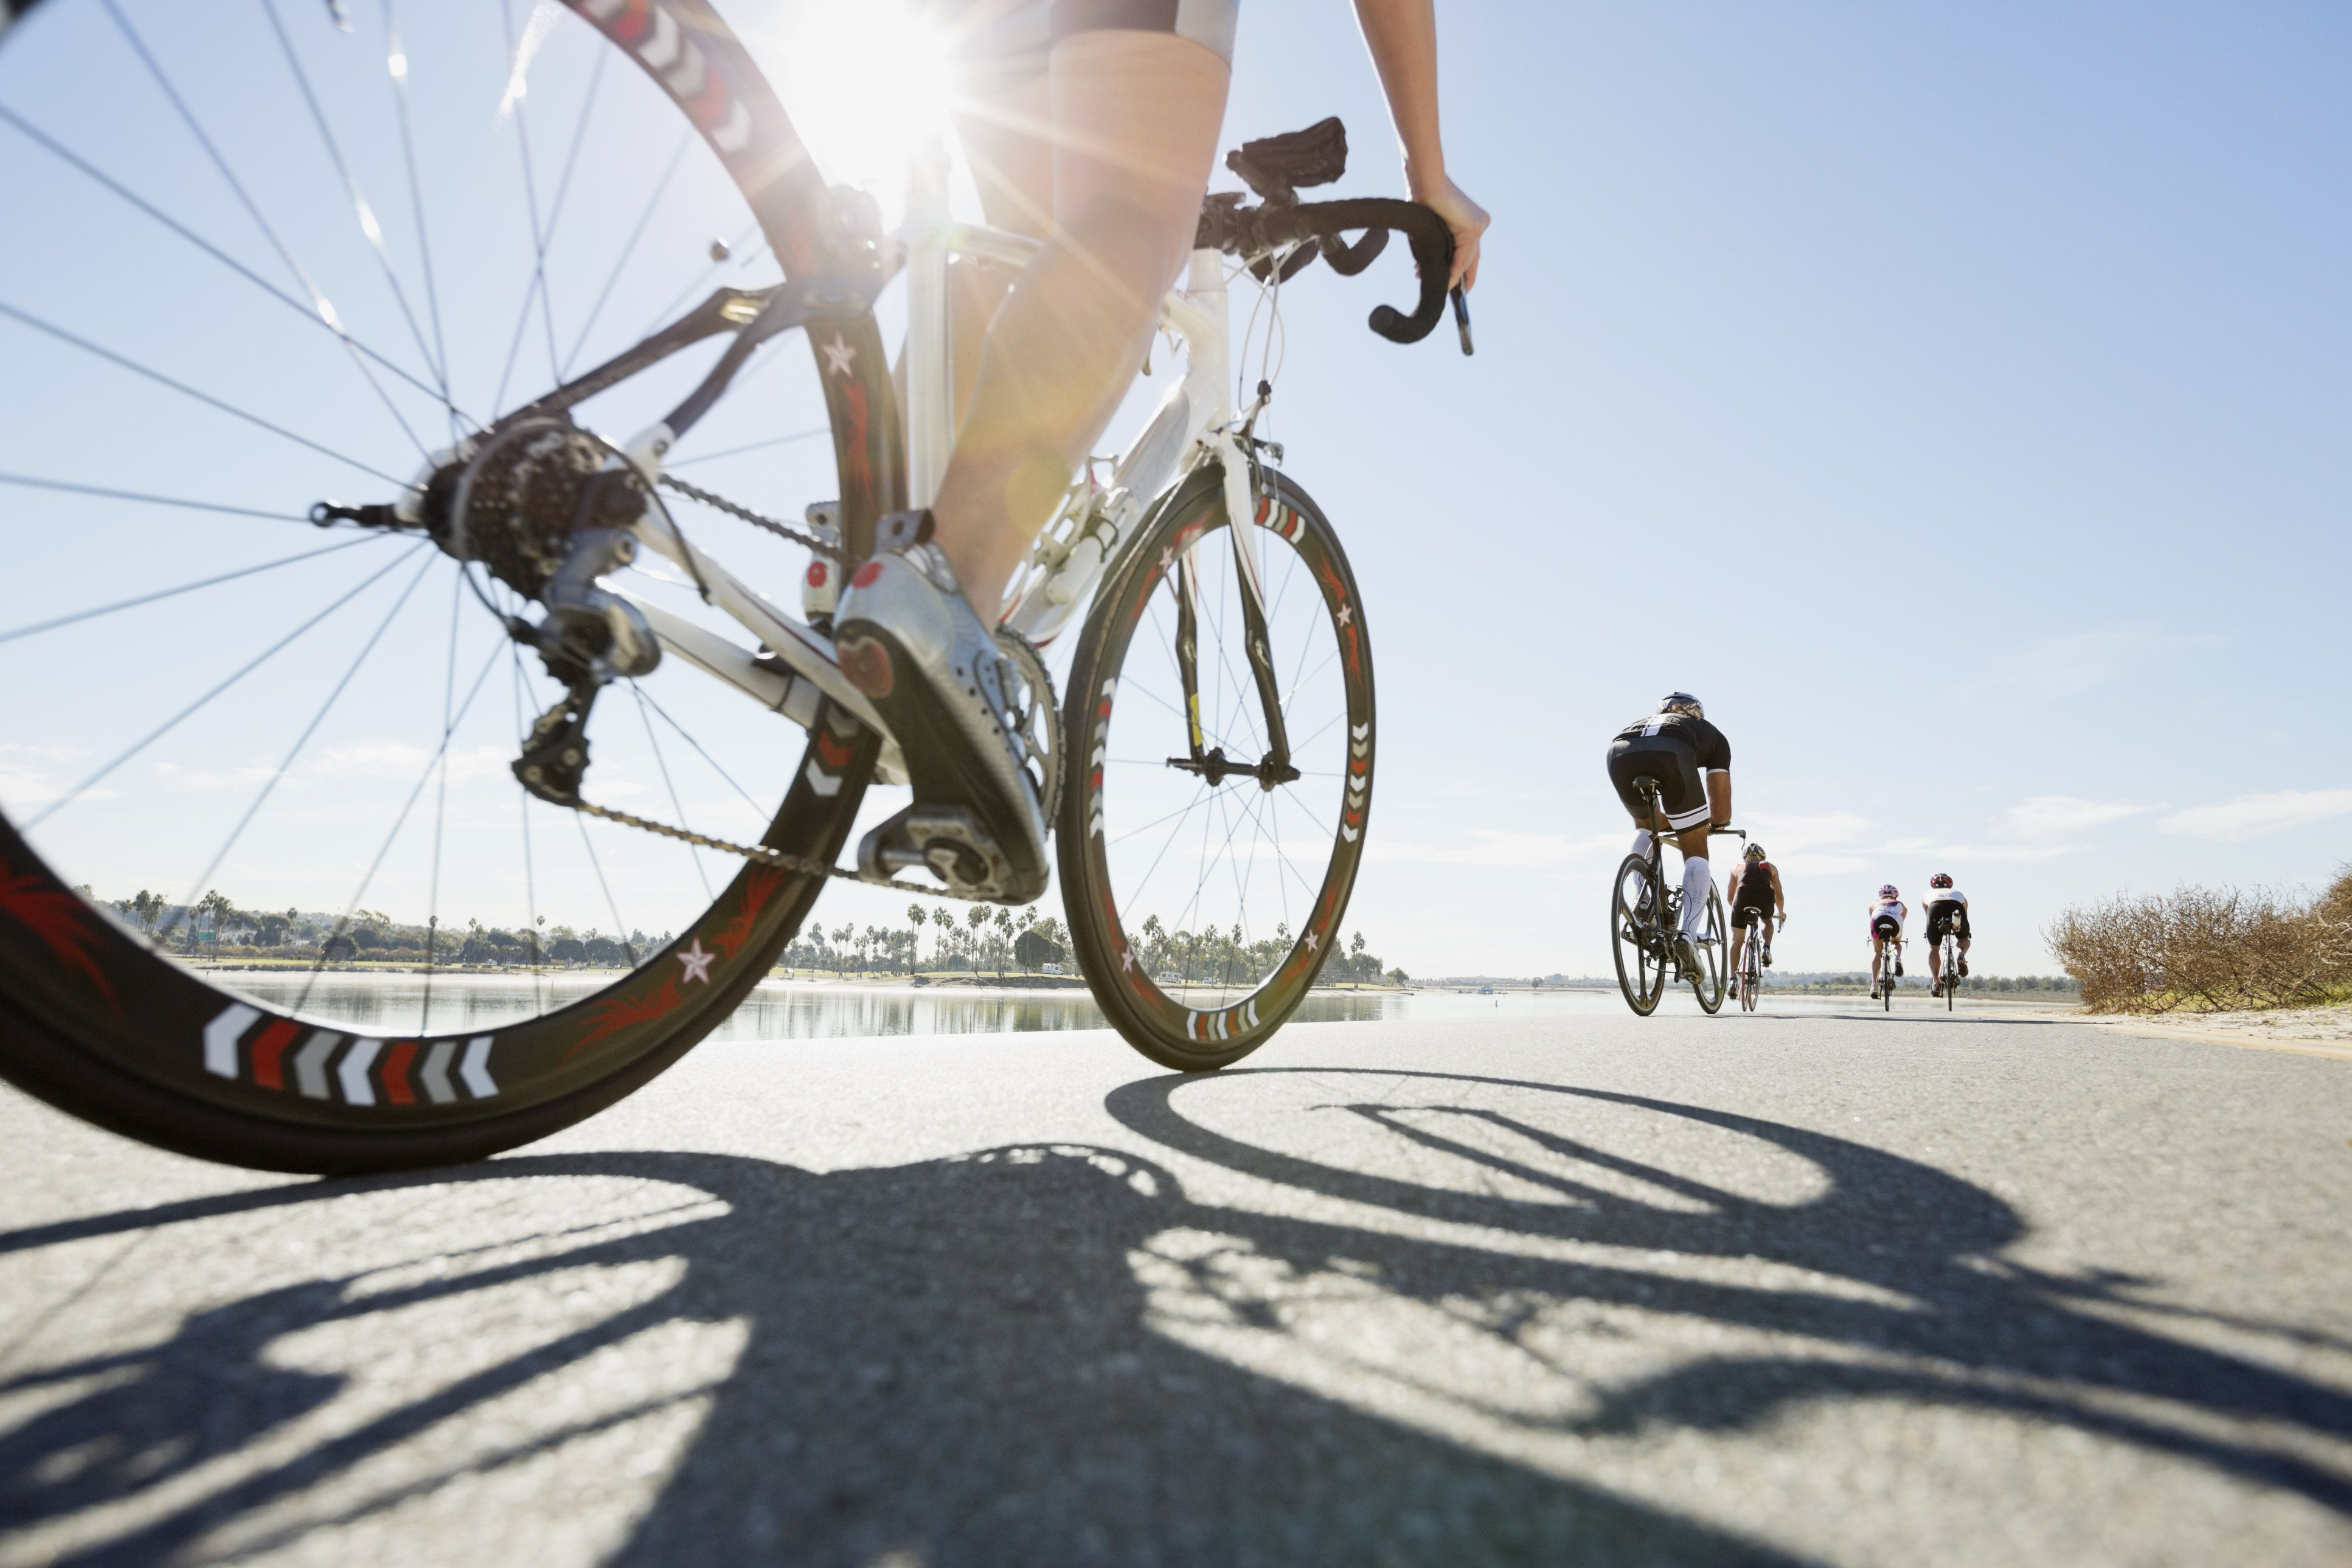 Rear view of triathletes cycling on street